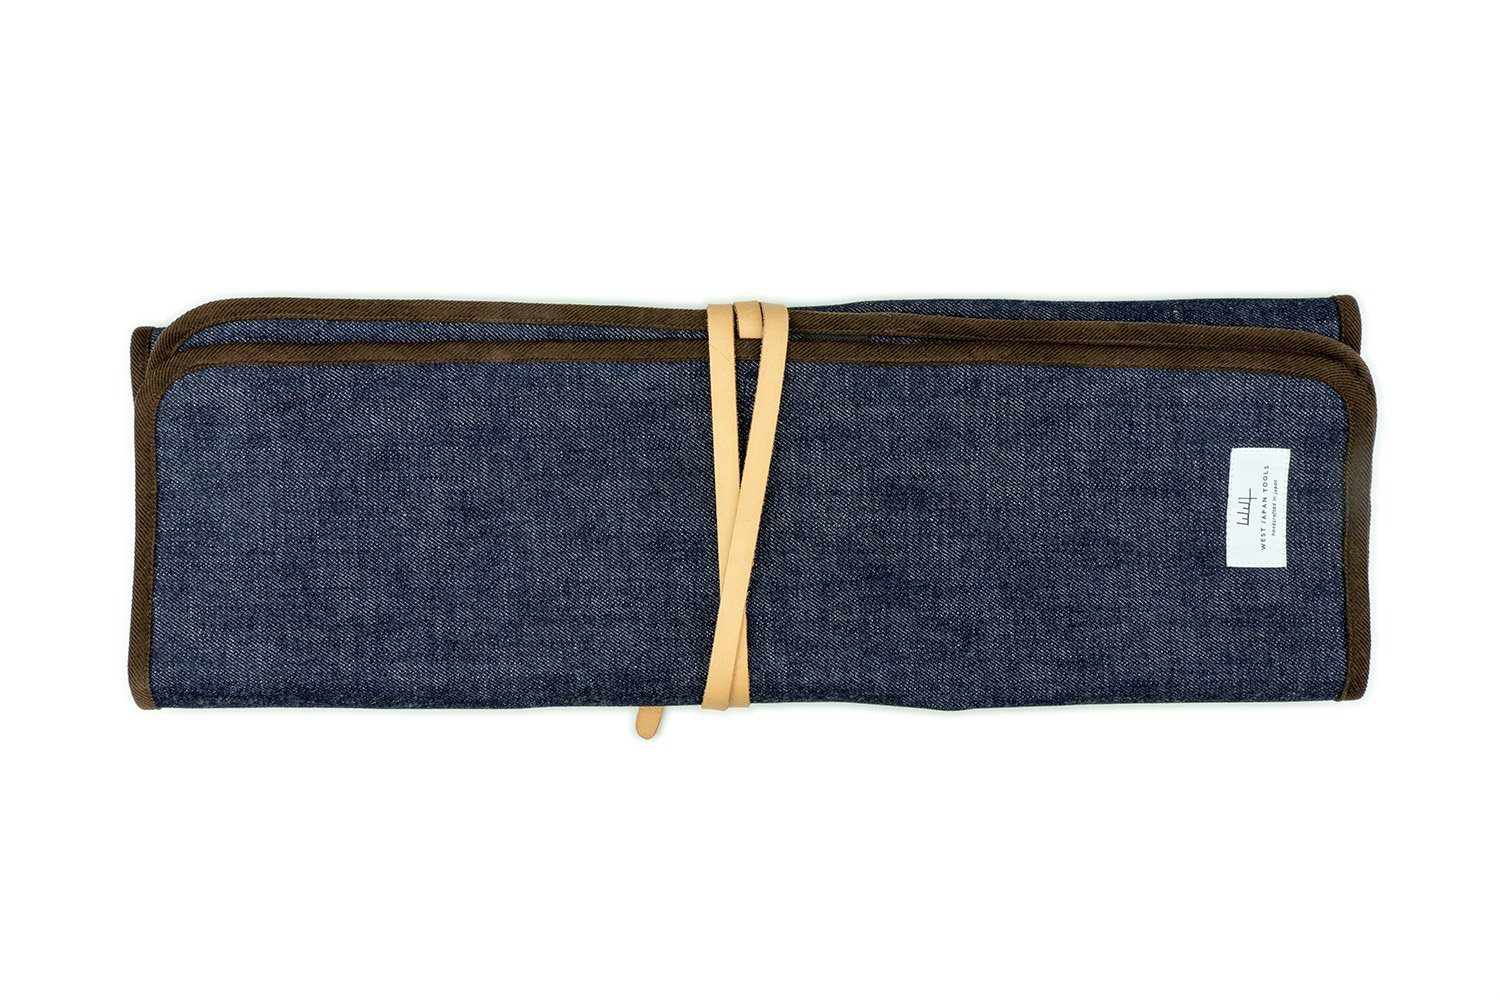 West Japan Tools 6 piece knife roll